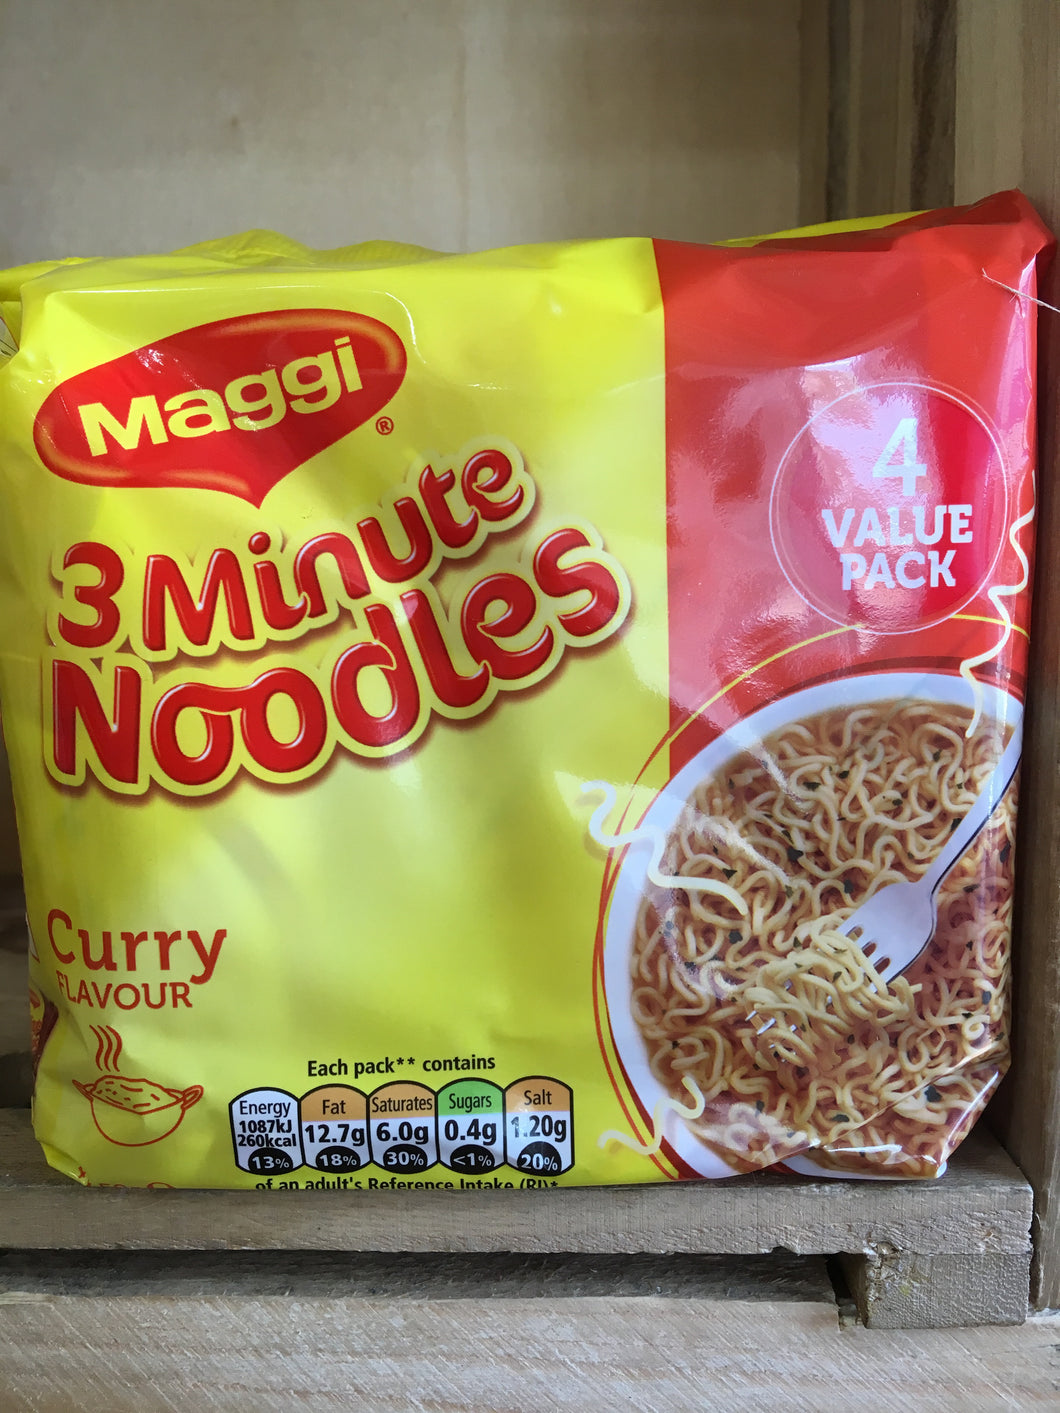 Maggi 3 Minute Noodles Curry Flavour 4 Pack (4x59g)